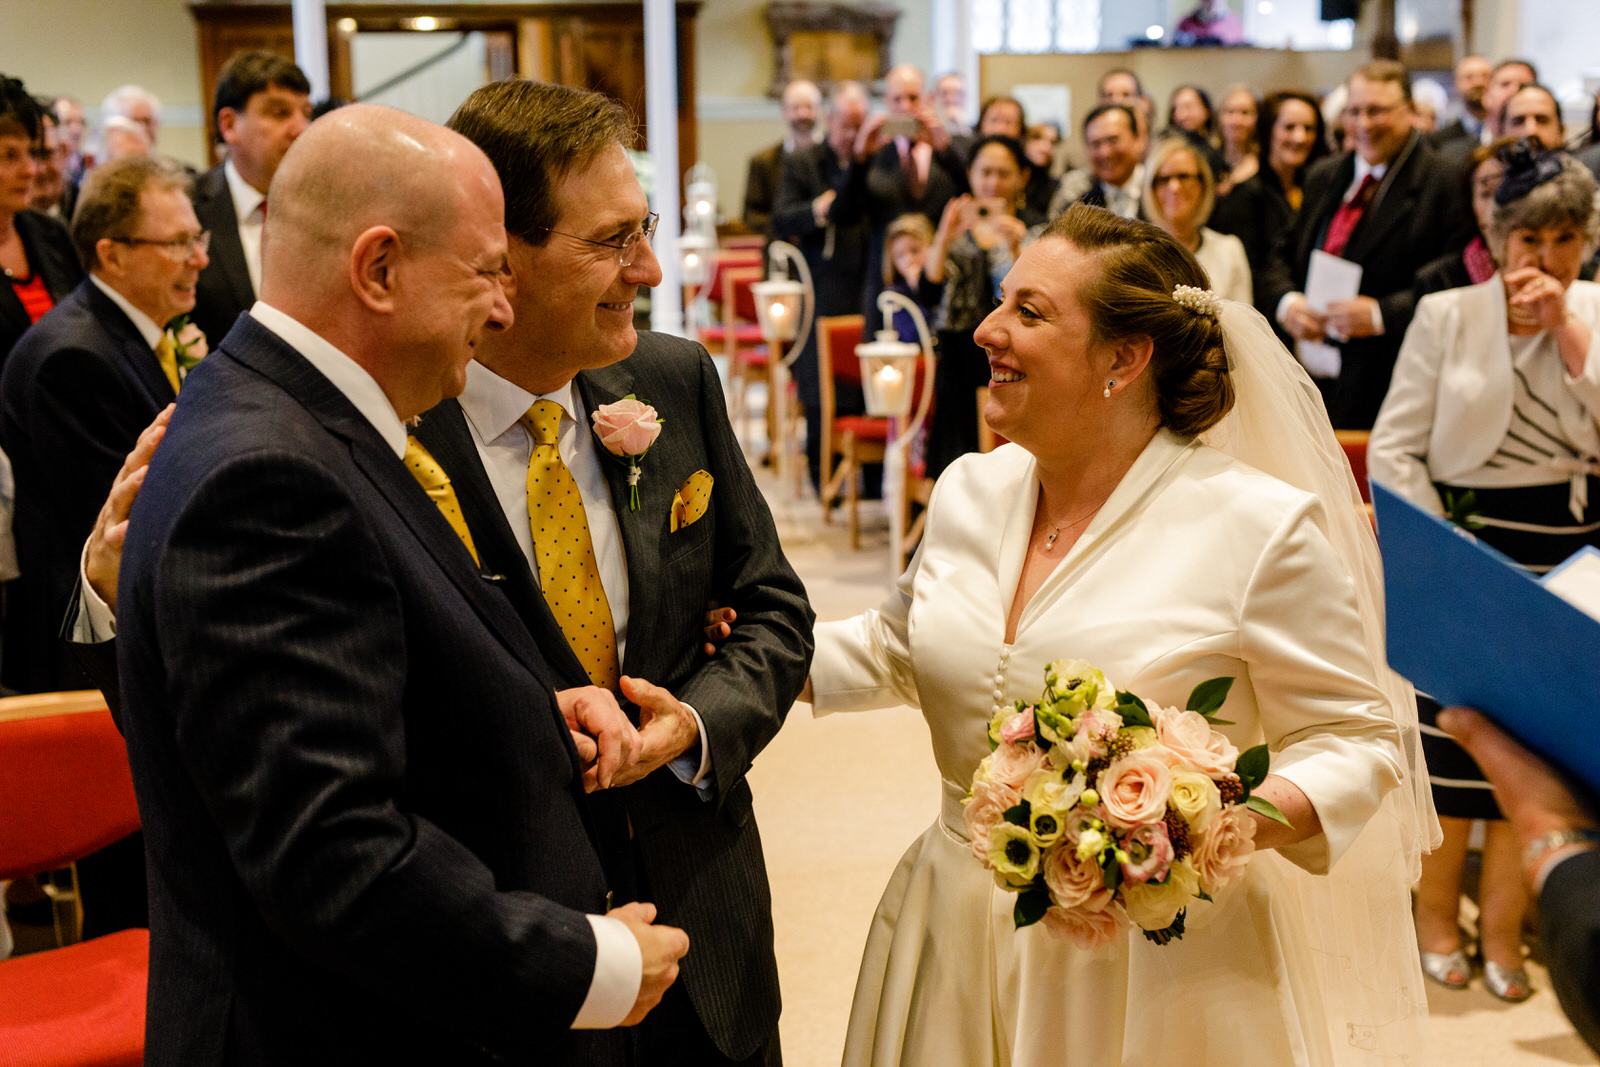 Roger-kenny-wedding-photographer-wicklow-glenview_031.jpg